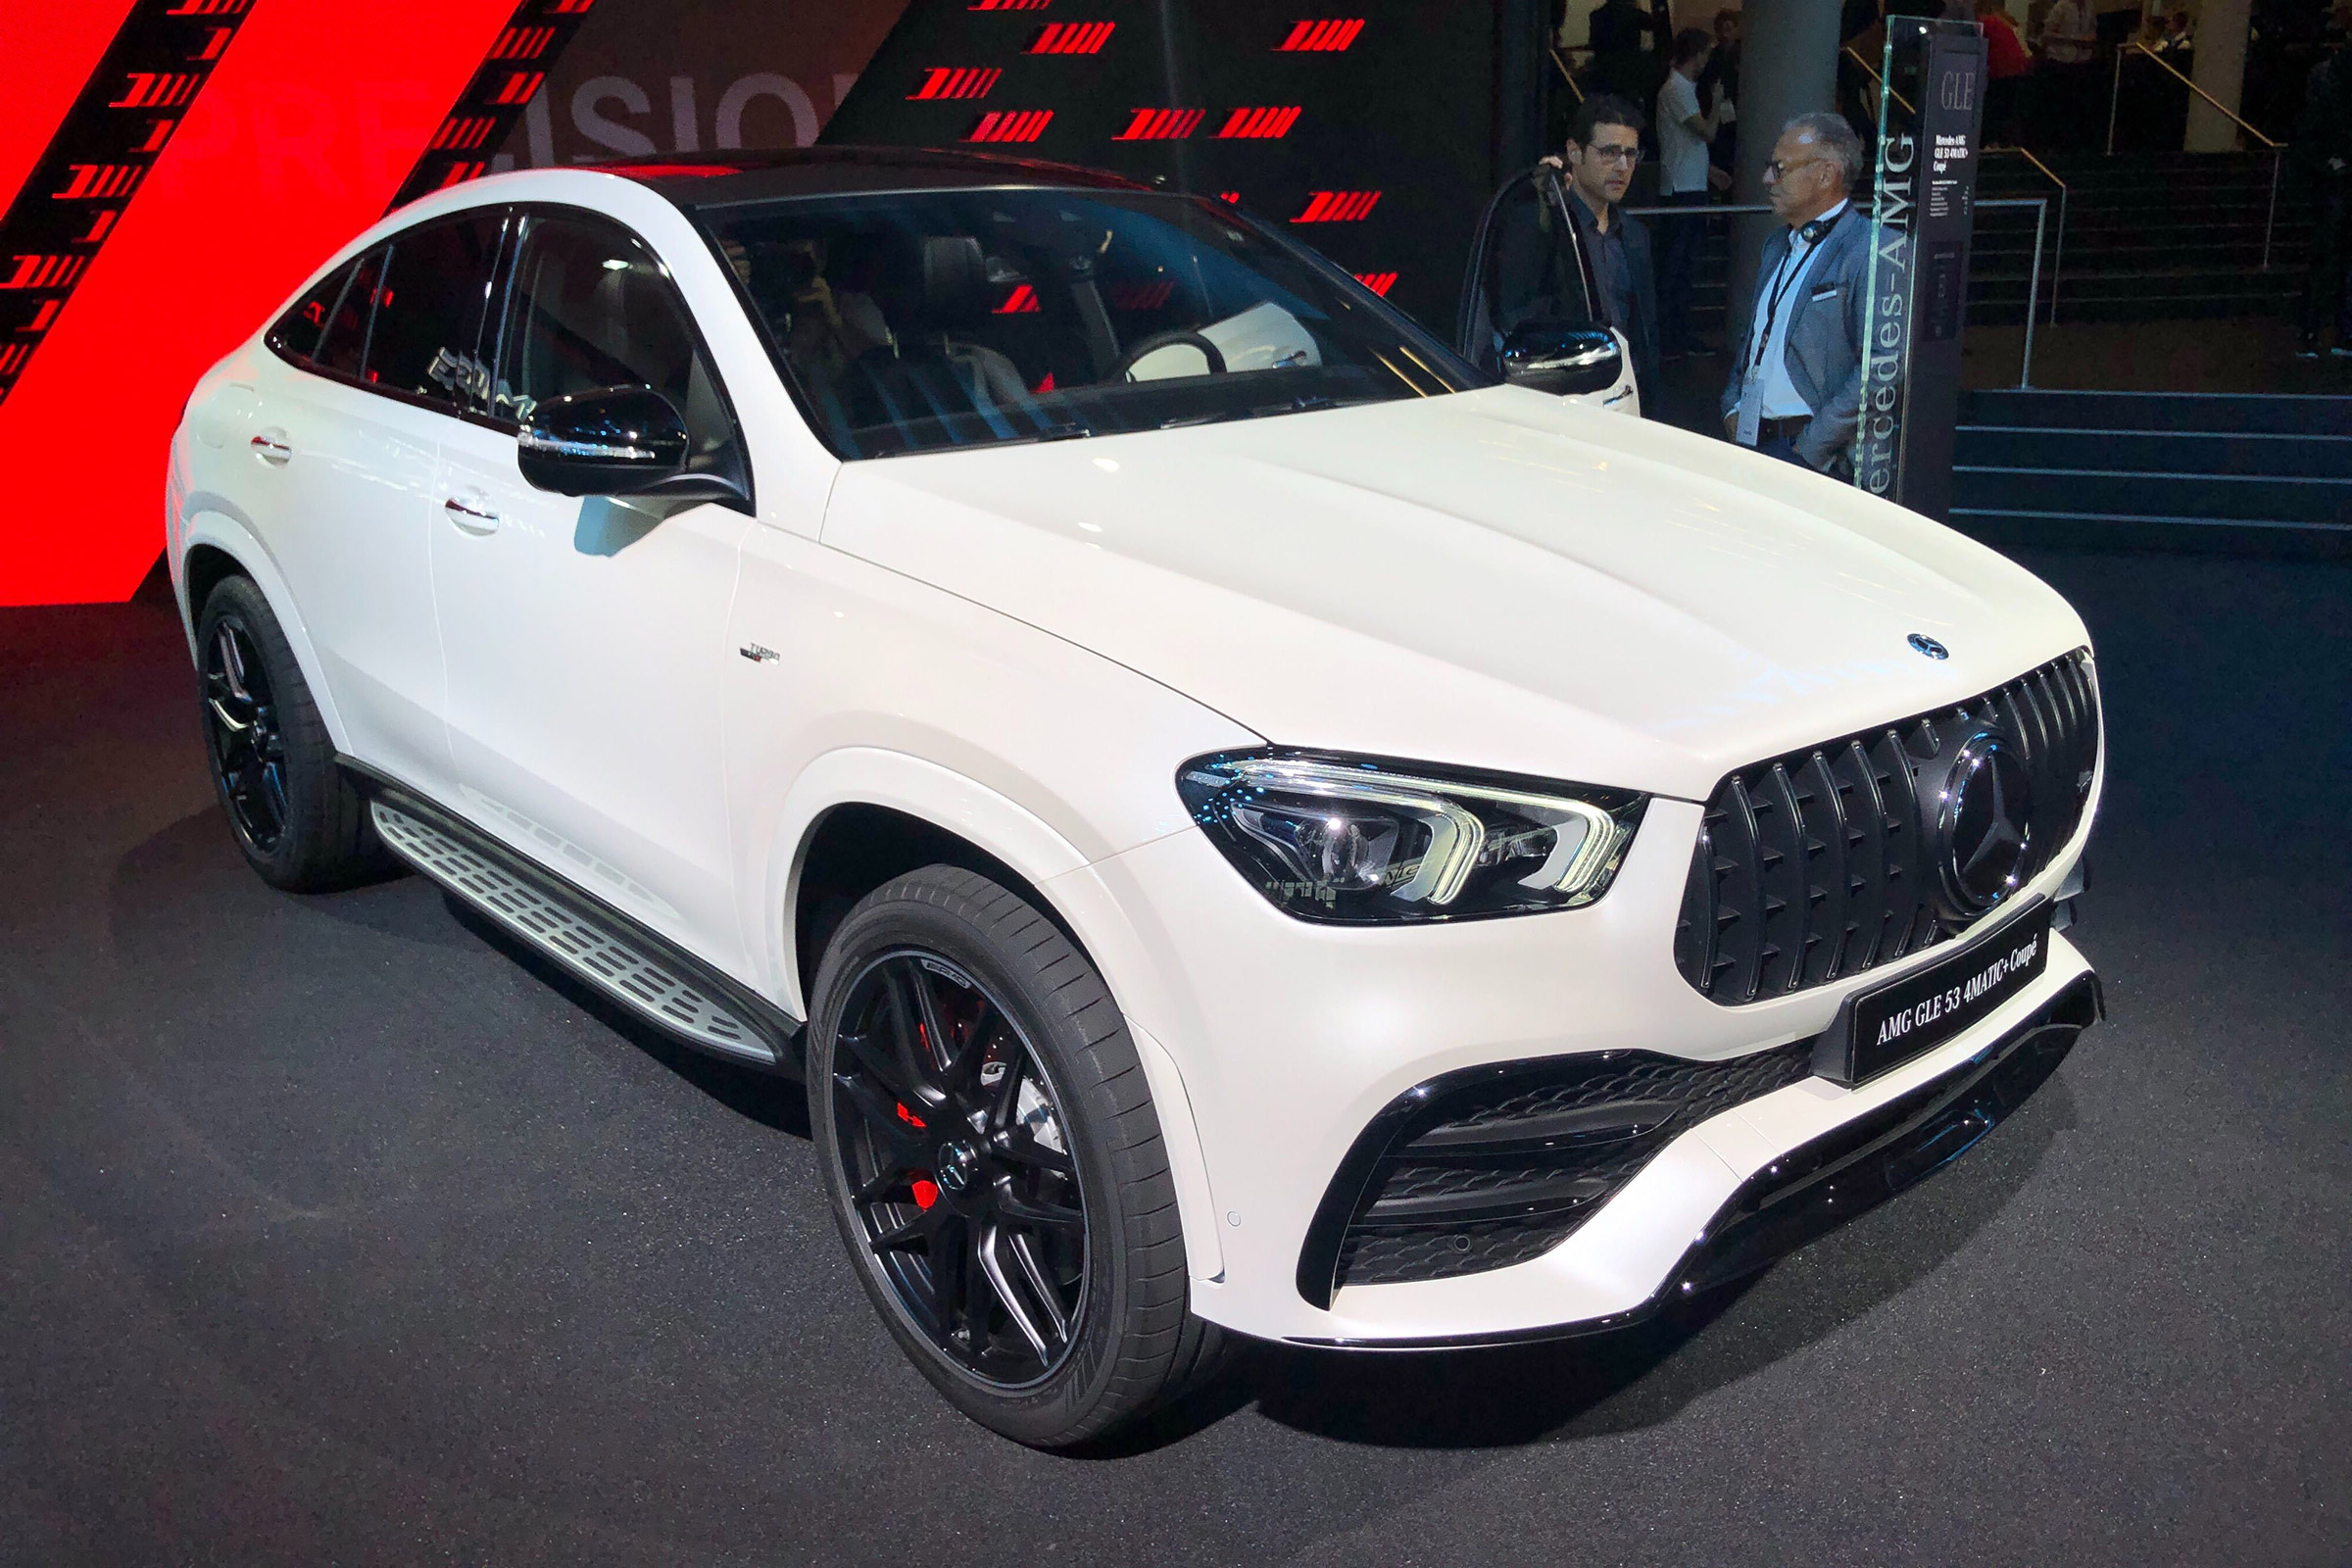 New 2019 Mercedes GLE Coupe: pricing, specs and details ...